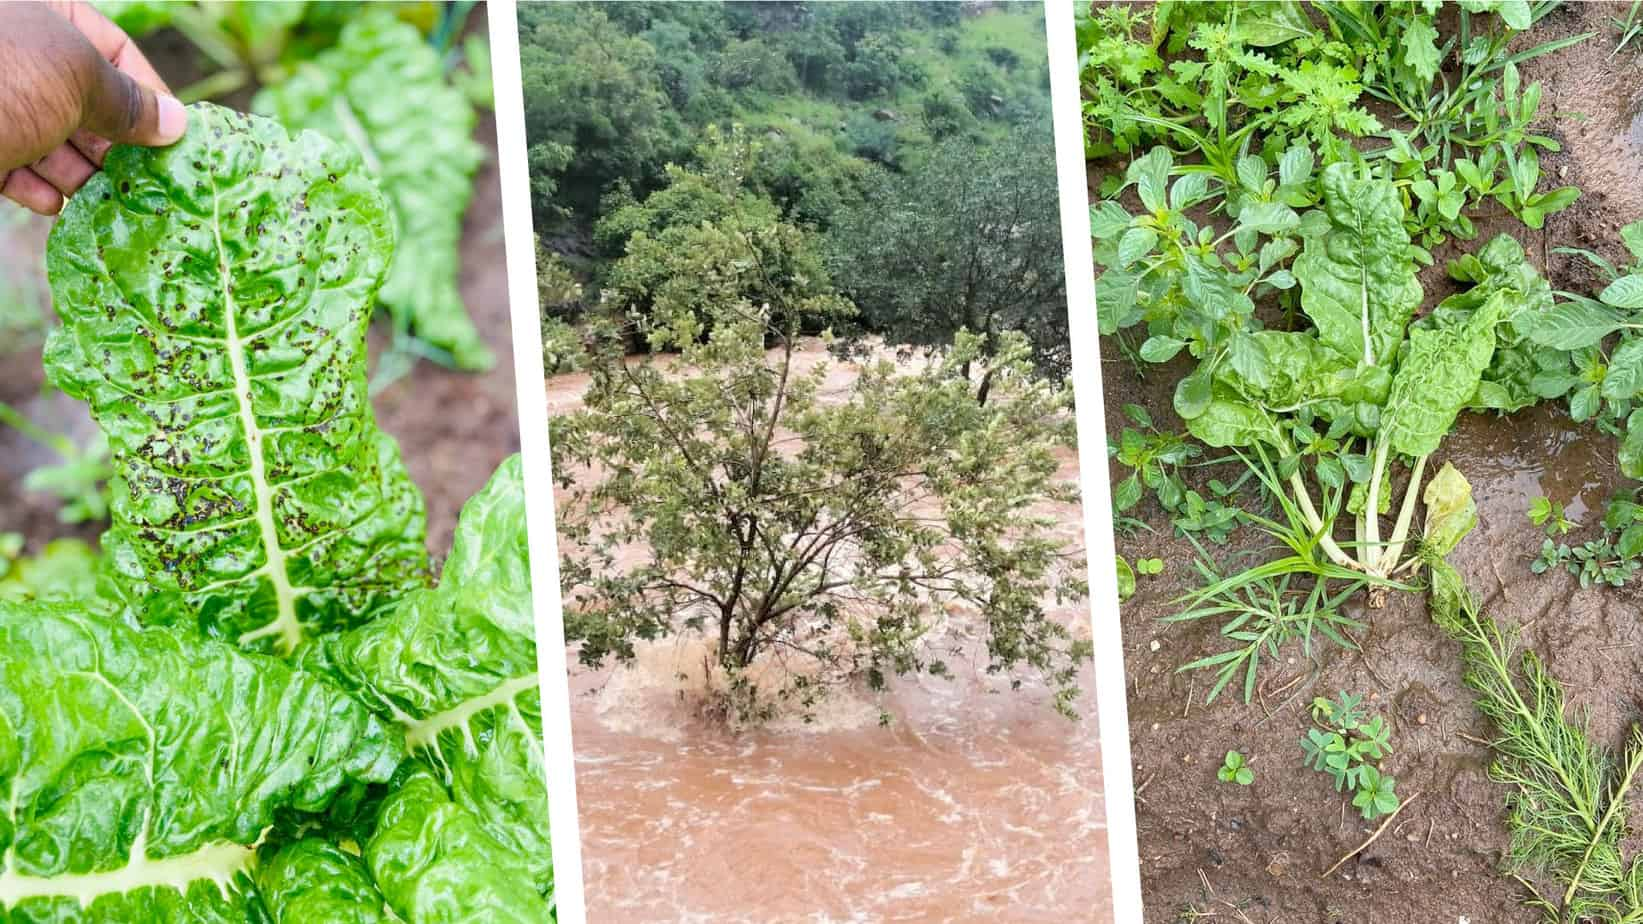 Mpumalanga and KwaZulu-Natal fear severe crop damage in the wake of tropical storm Eloise. Photos: Supplied/Food For Mzansi